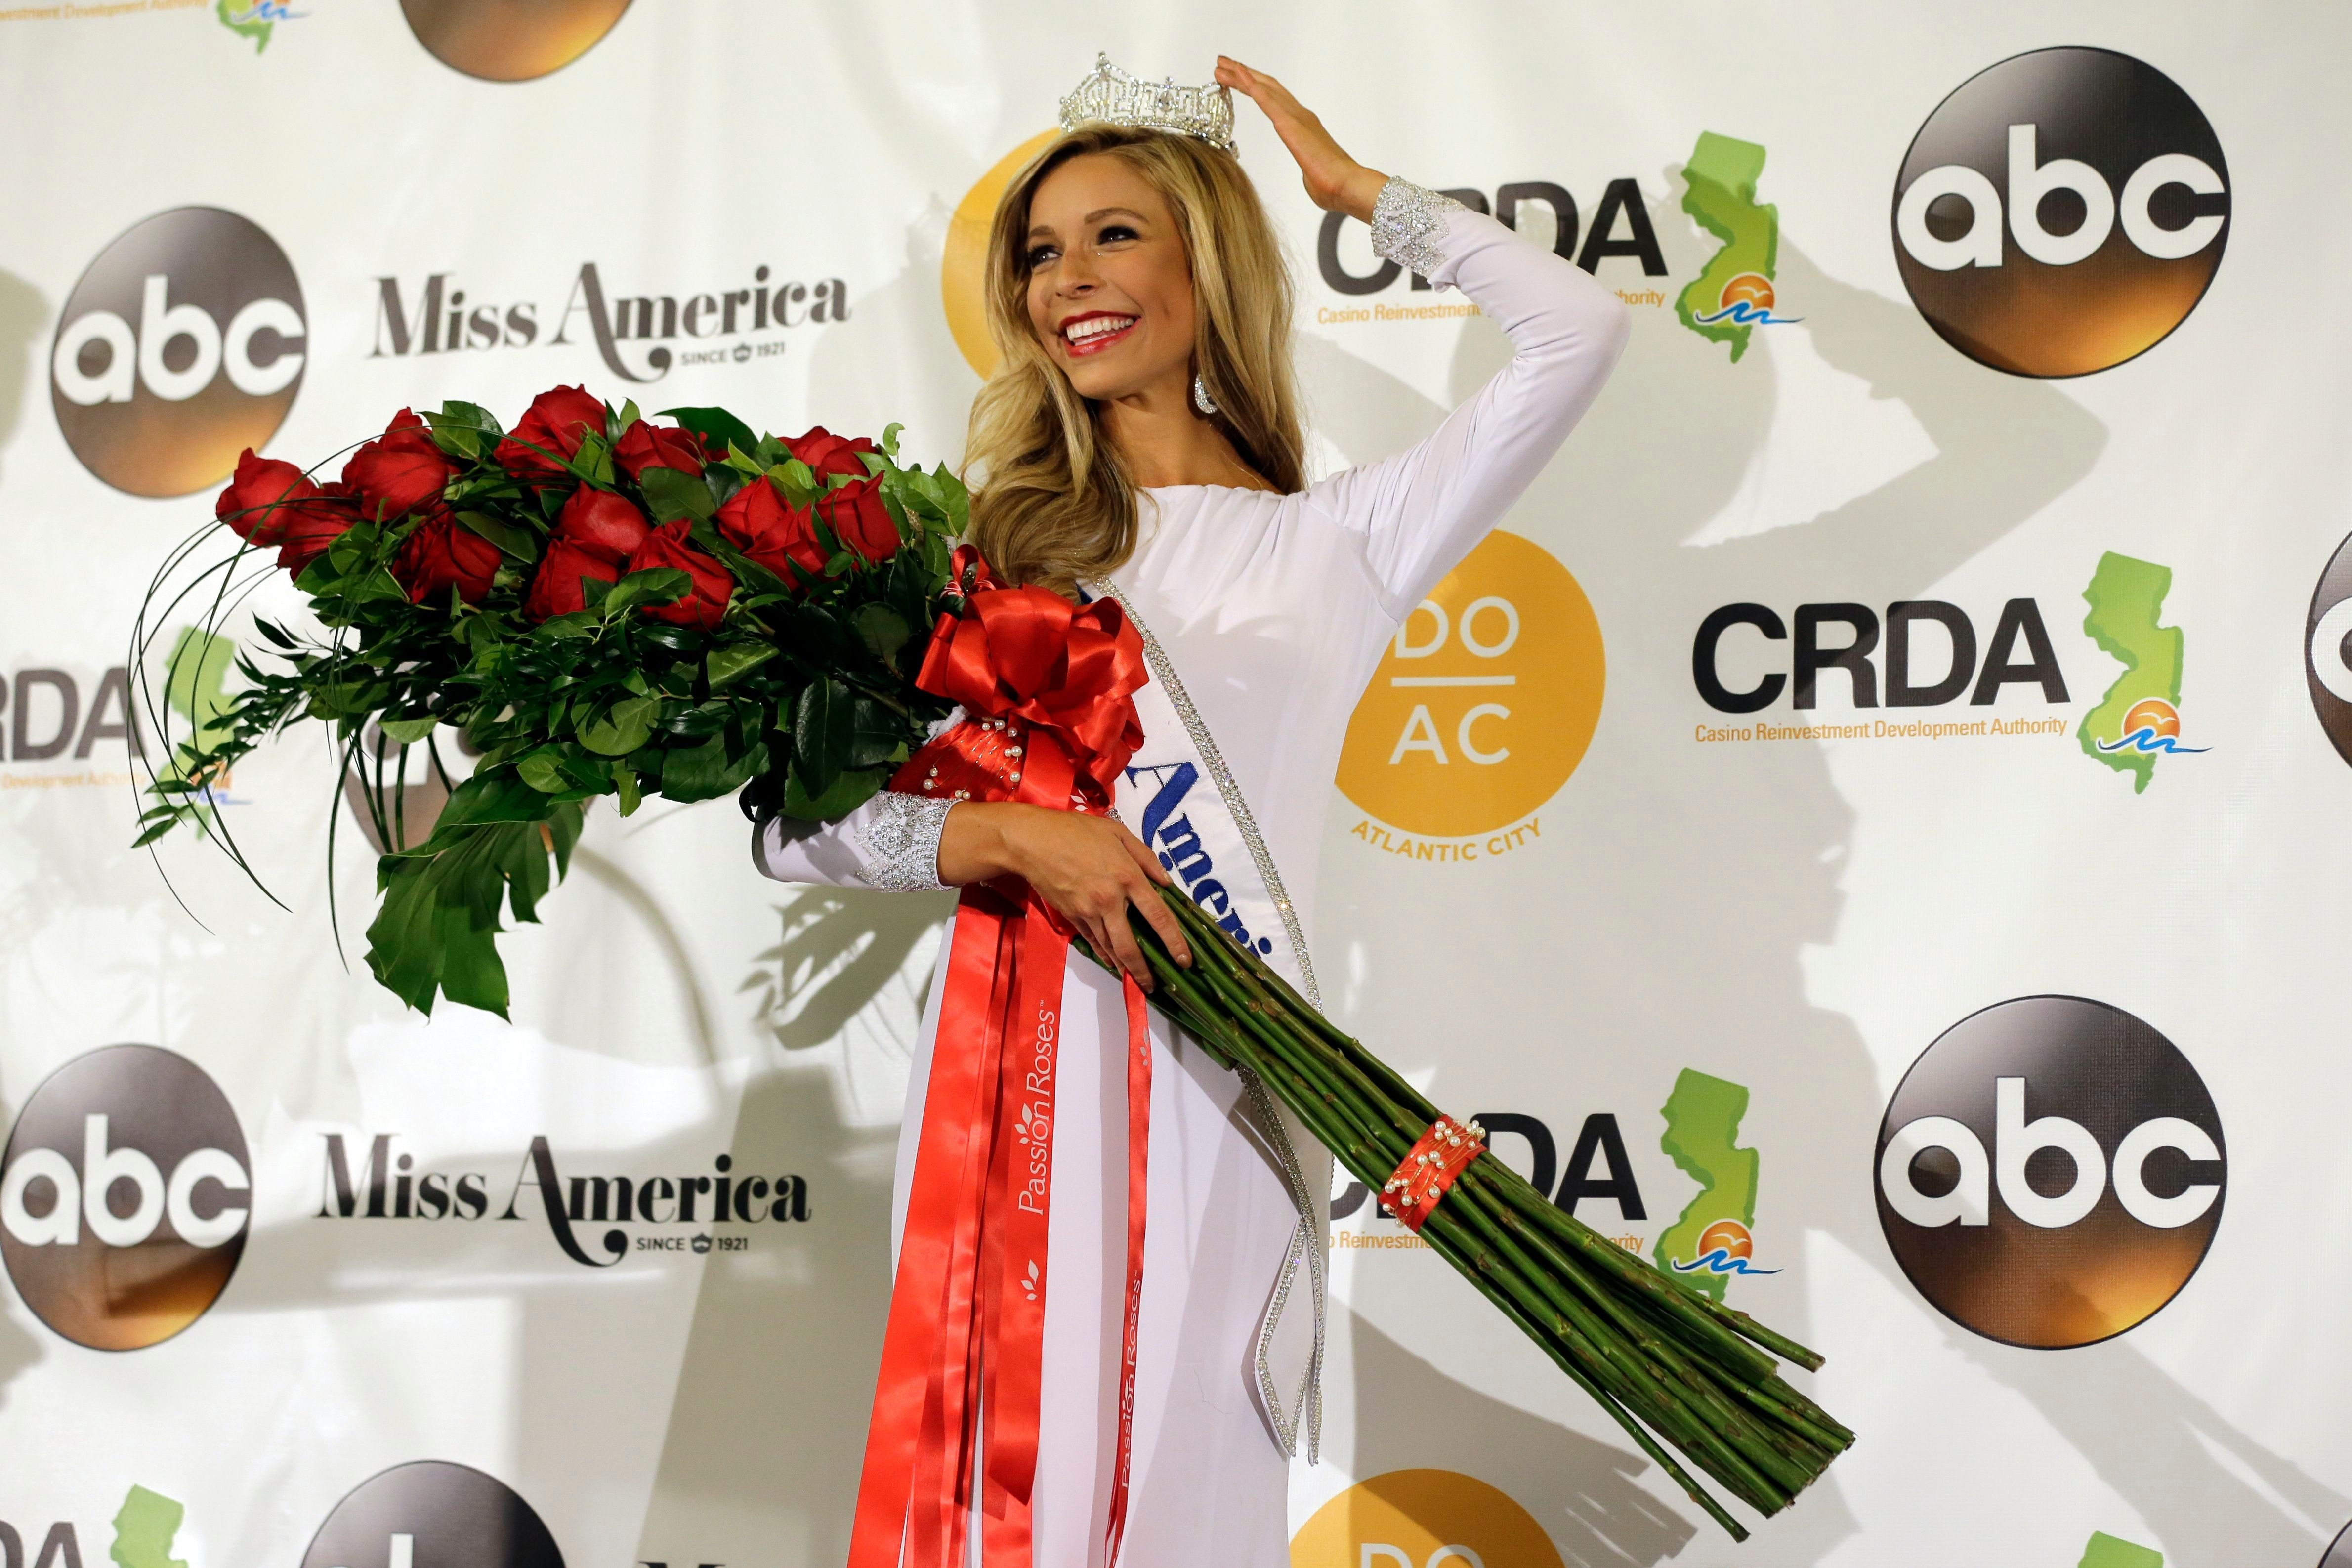 Mandatory Credit: Photo by Mel Evans/AP/Shutterstock (6017778j) Kira Kazantsev Miss New York Kira Kazantsev poses for photographers during a news conference after she was crowned Miss America 2015 during the Miss America 2015 pageant, in Atlantic City, N.J Miss America, Atlantic City, USA